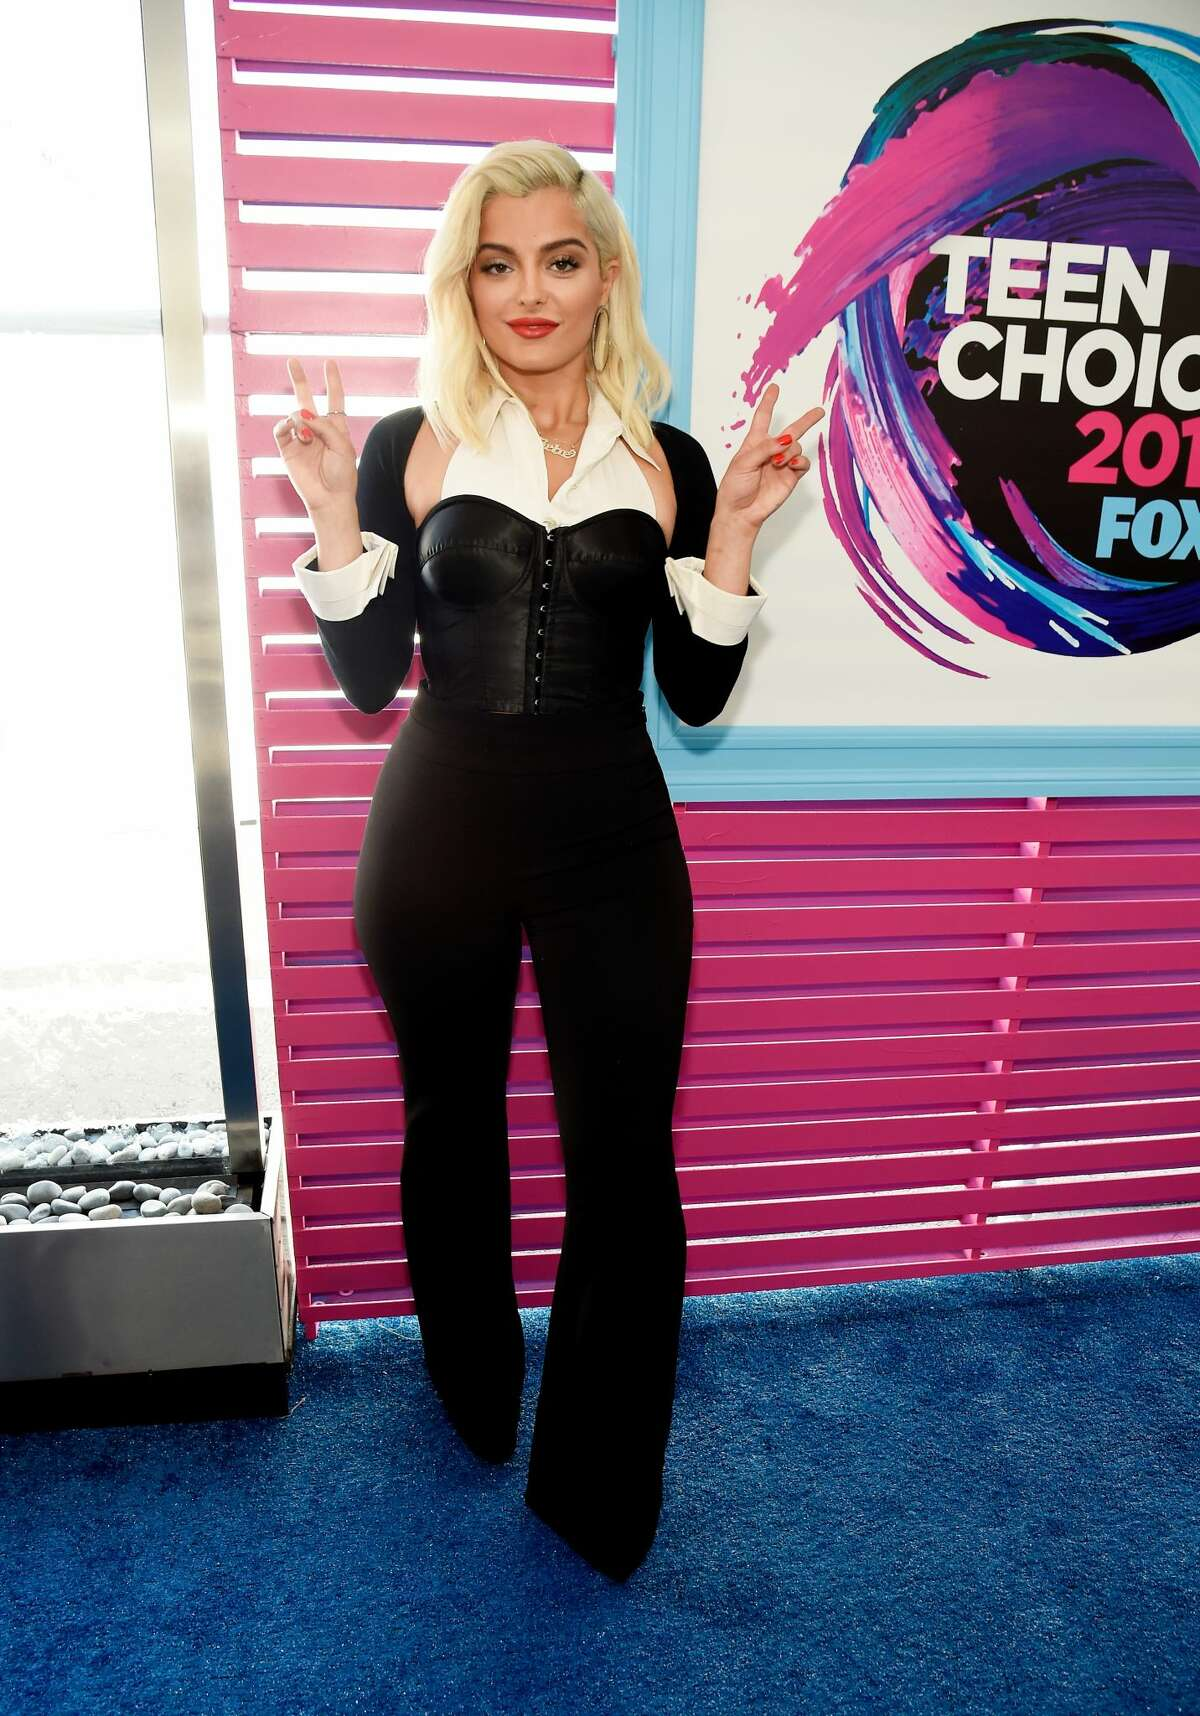 Worst:Bebe Rexha, your faux tux outfit looks like a bad costume for a jazz routine.